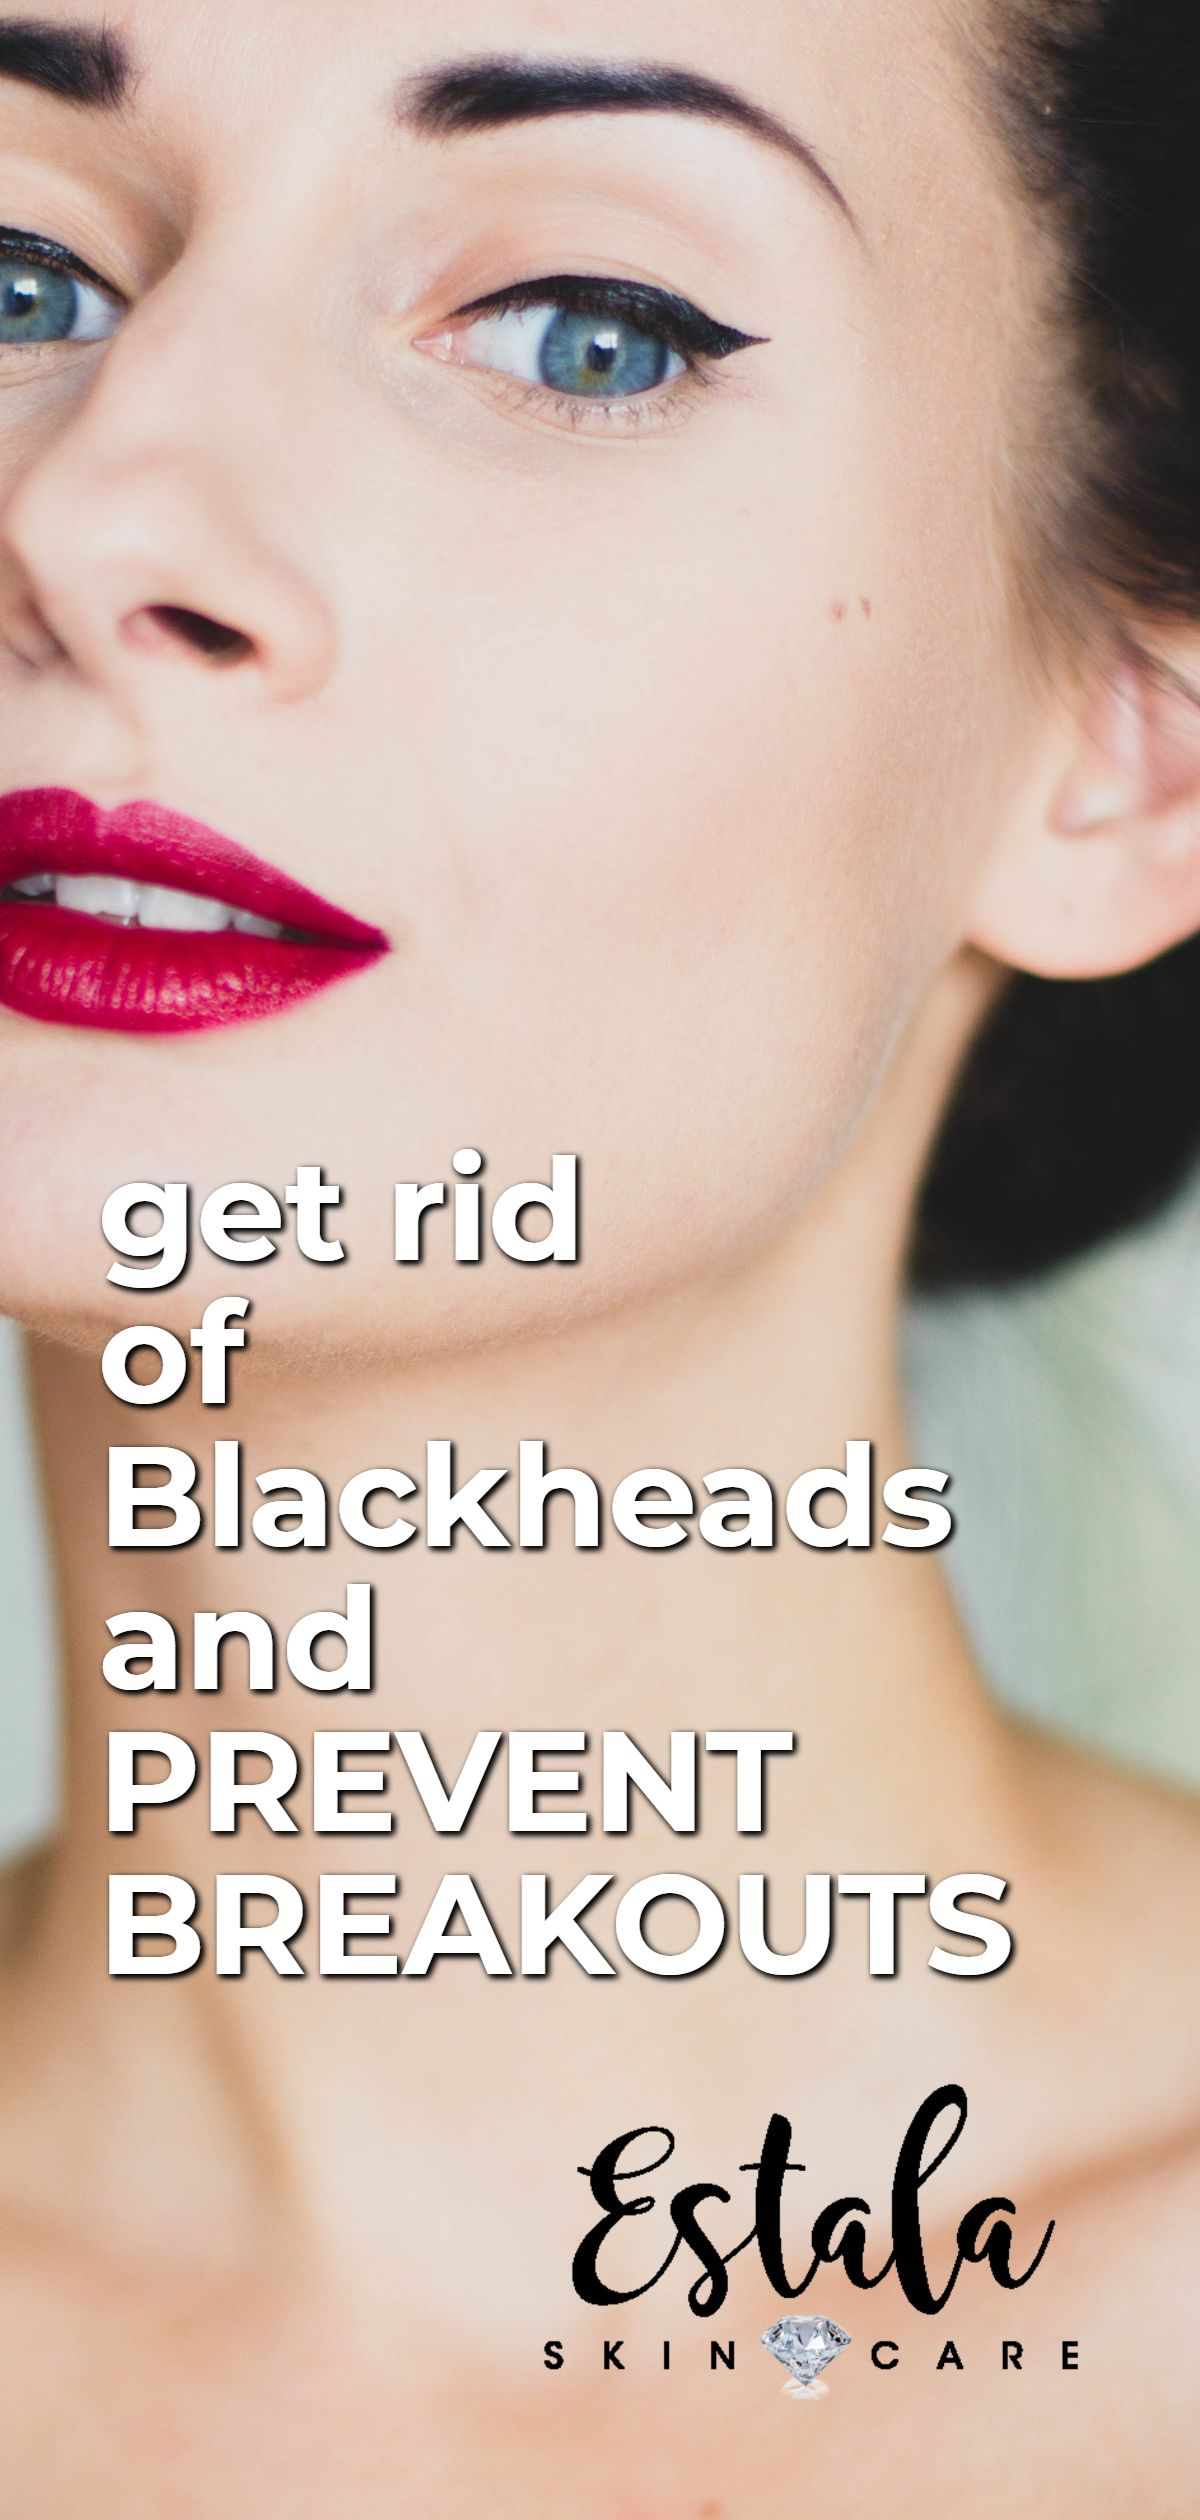 Get rid of blackheads and prevent breakouts try this acne